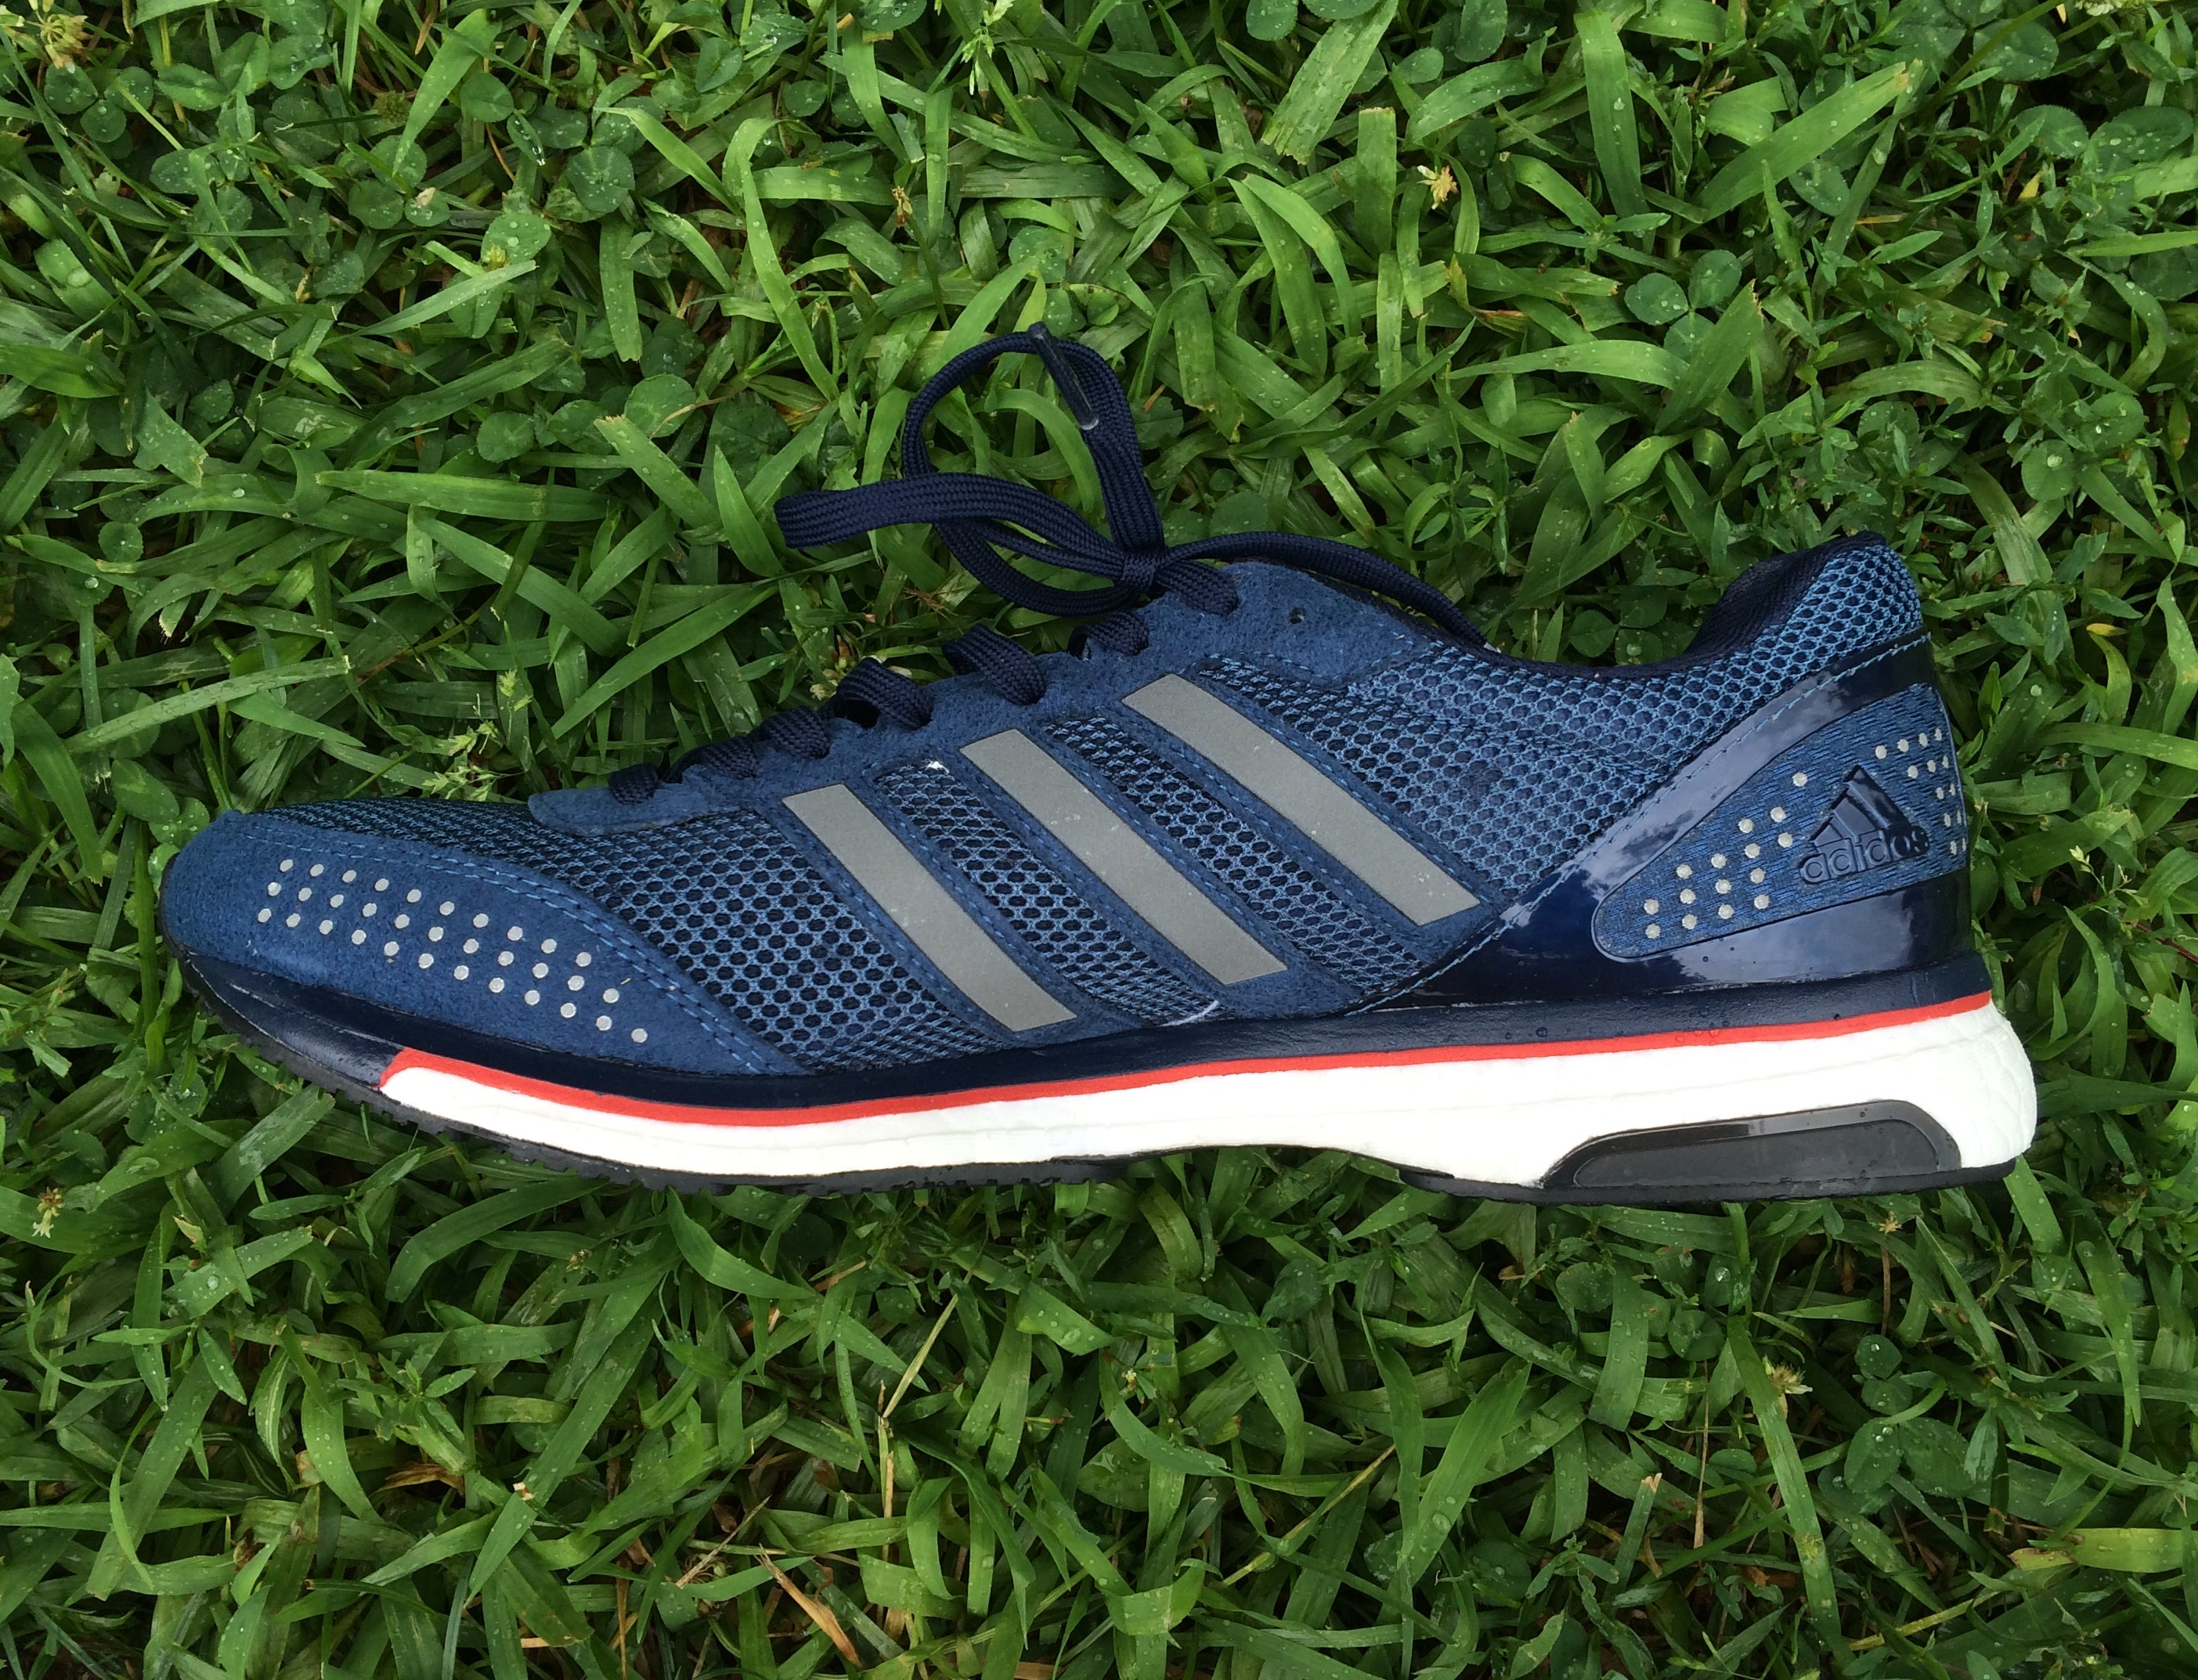 Colectivo costilla Muchos  adidas Adios Boost 2 Review: Same Great Ride, Different Fit